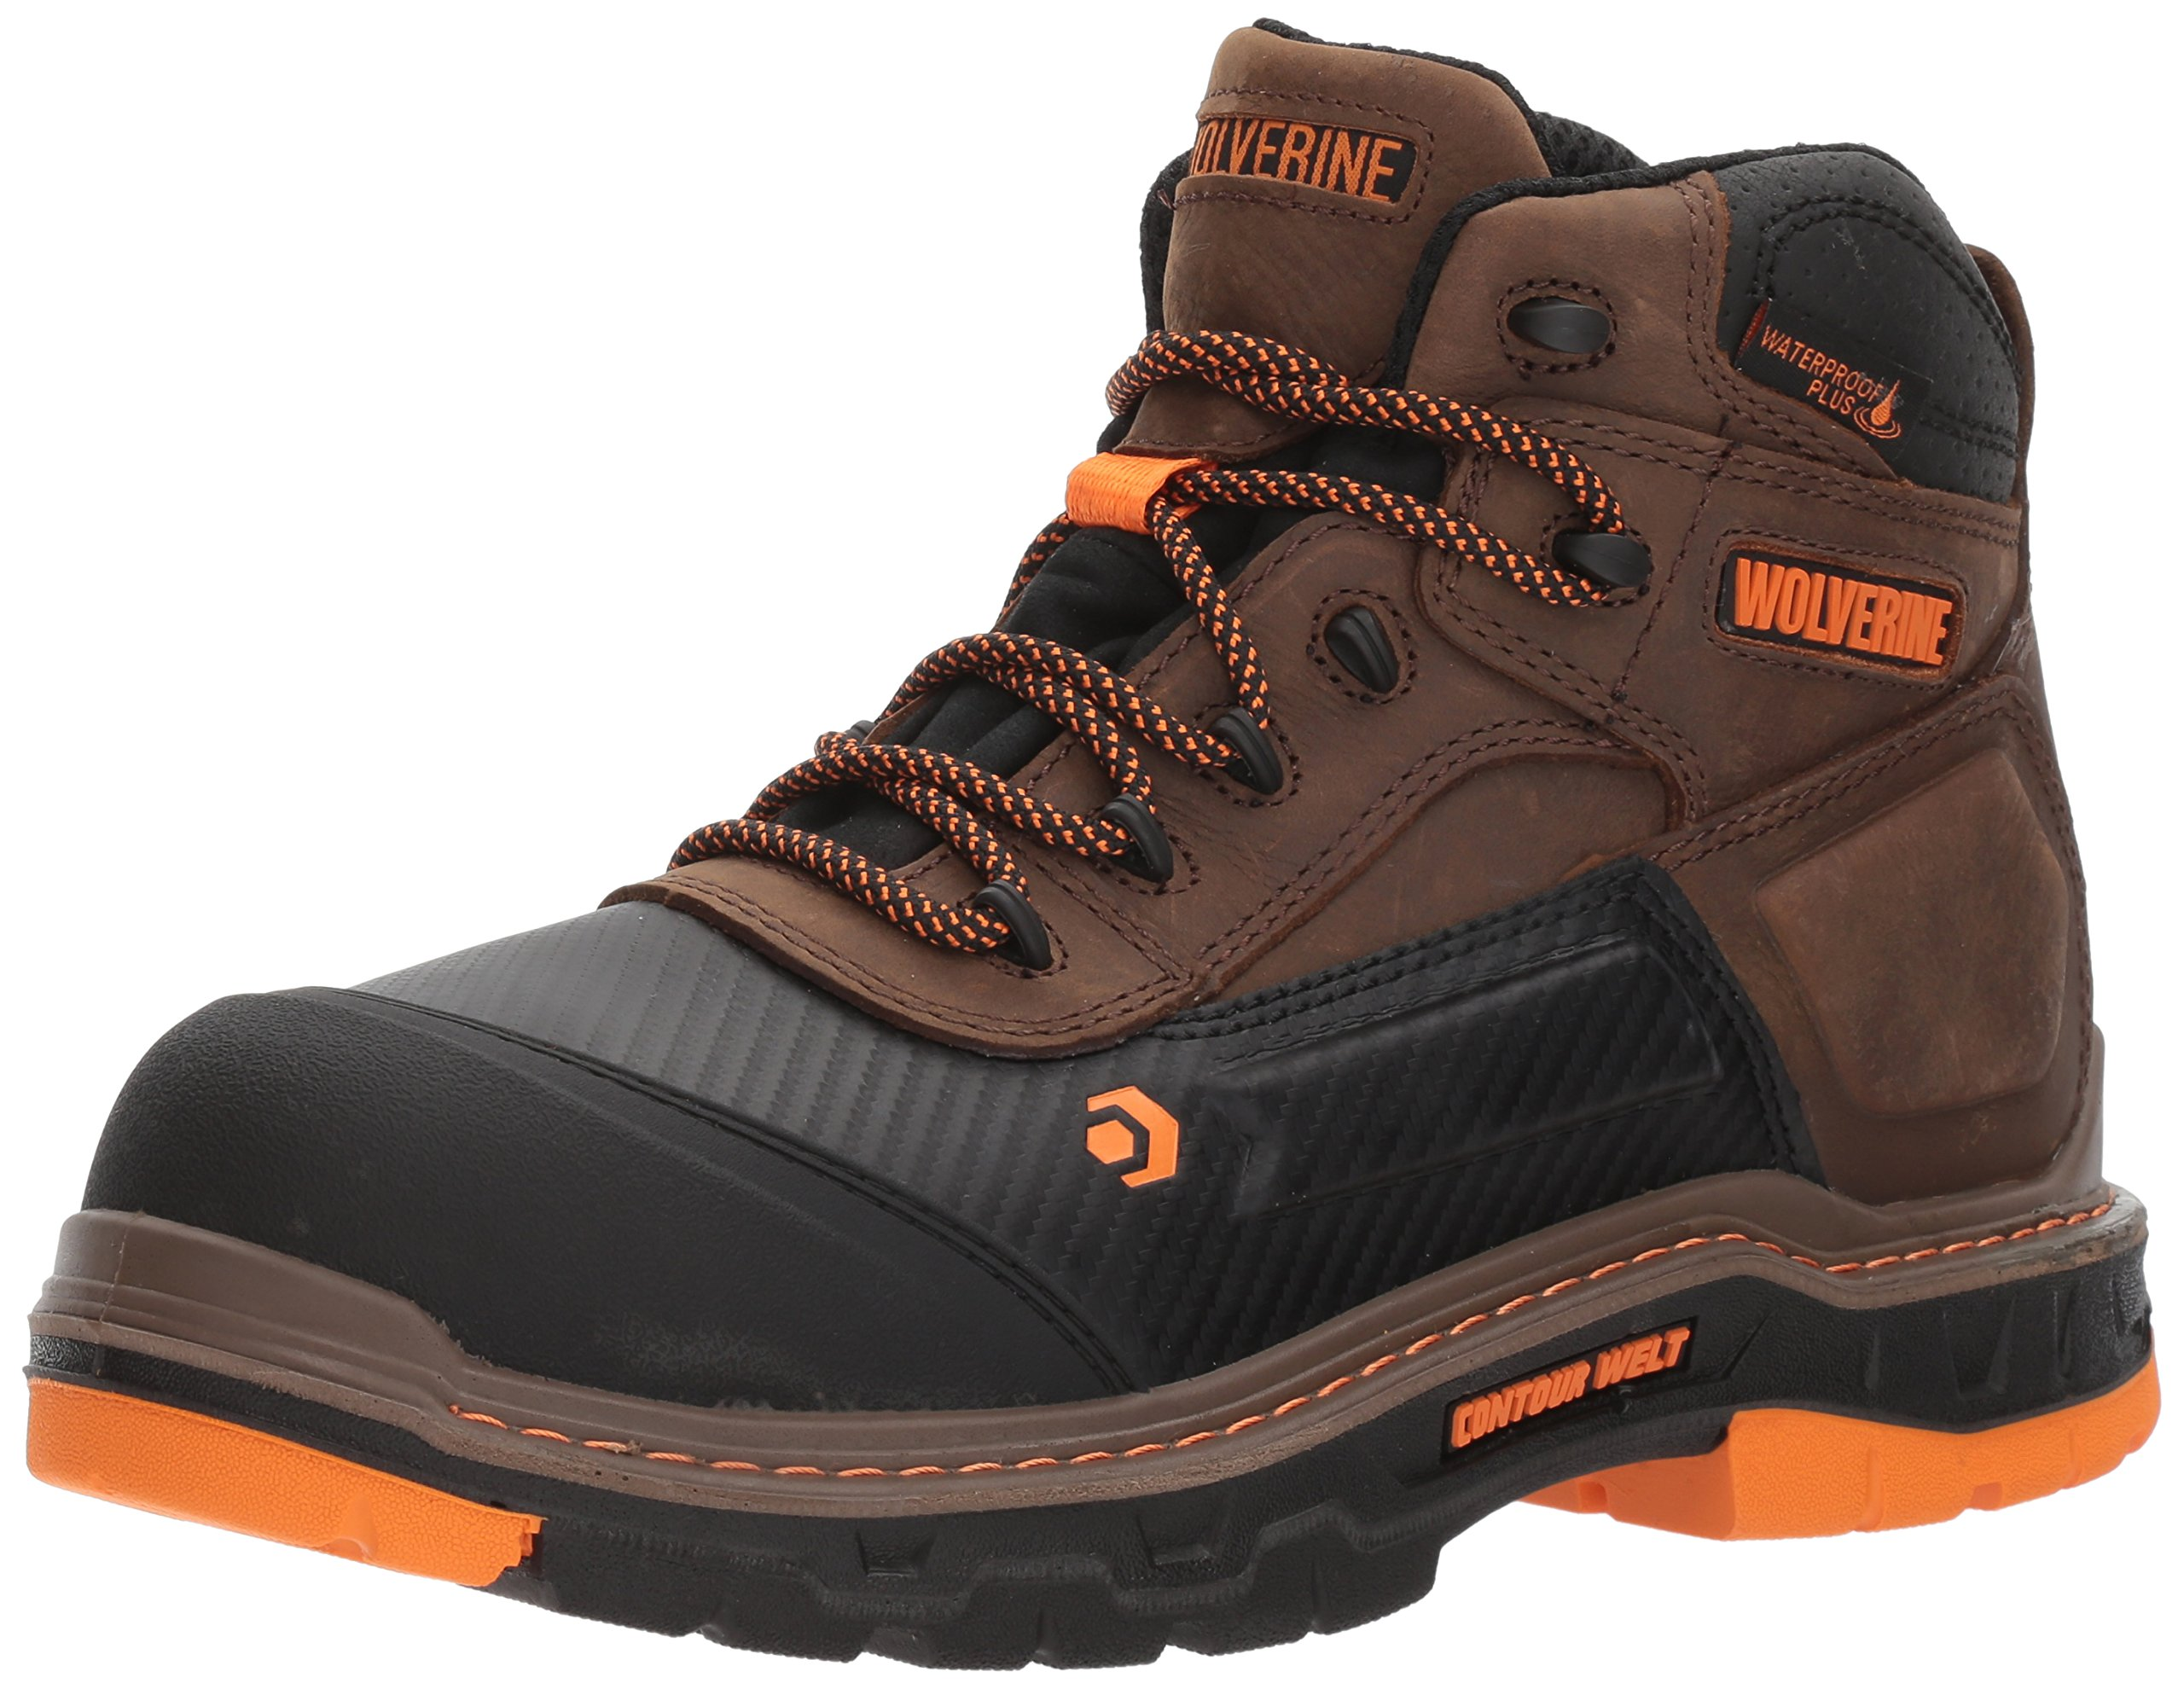 Wolverine Men's Overpass 6'' Composite Toe Waterproof Work Boot, Summer Brown, 12 M US